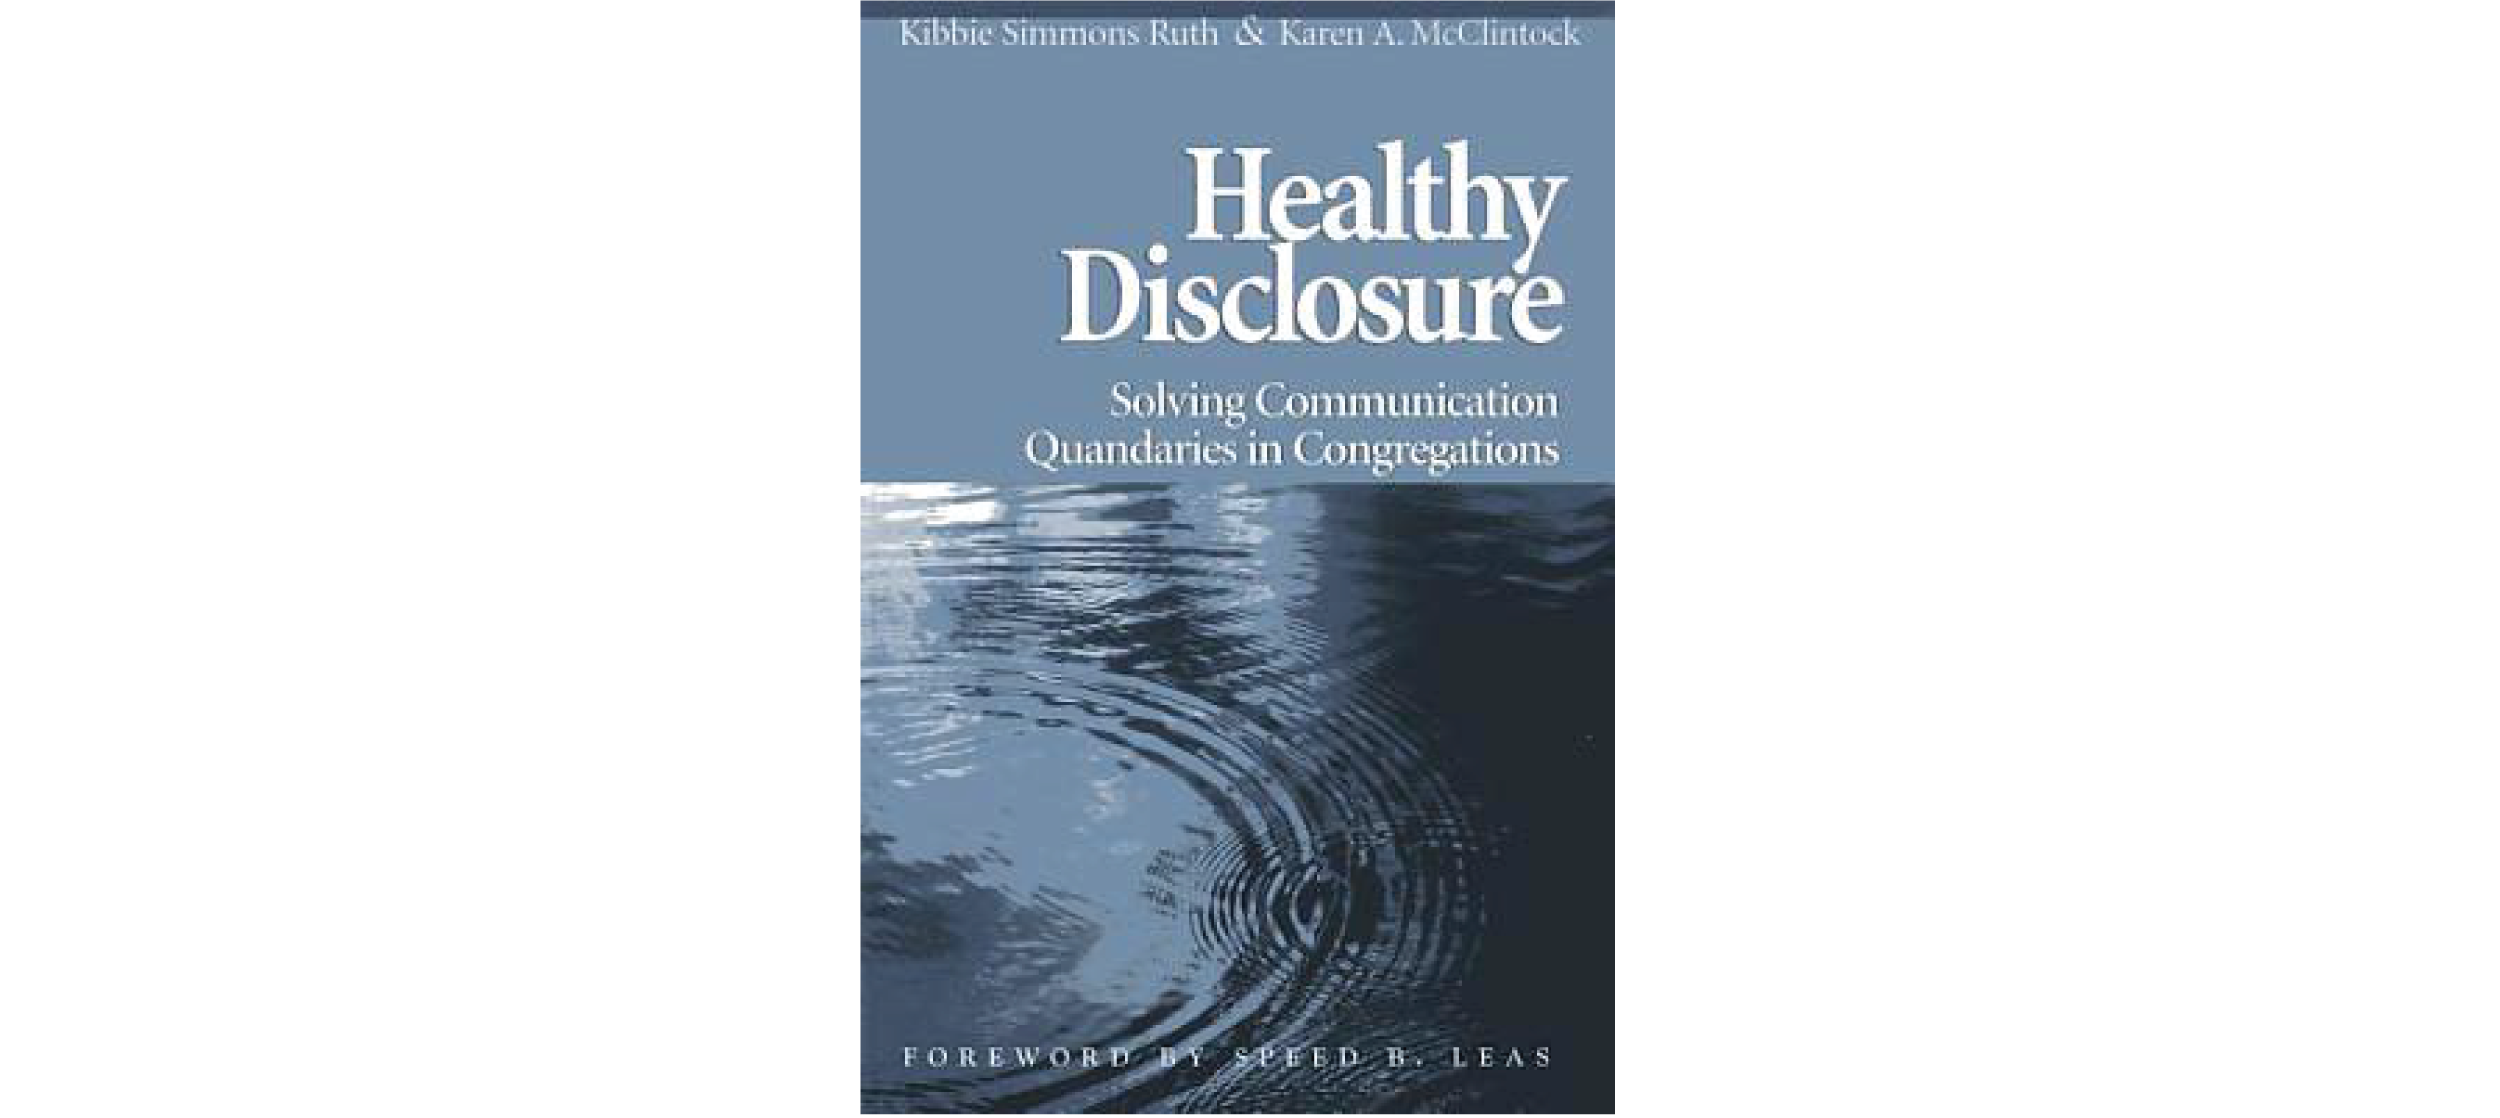 Healthy Disclosure: Solving Communication Quandaries in Congregations by Kibbie Simmons Ruth (Author), Karen A. McClintock